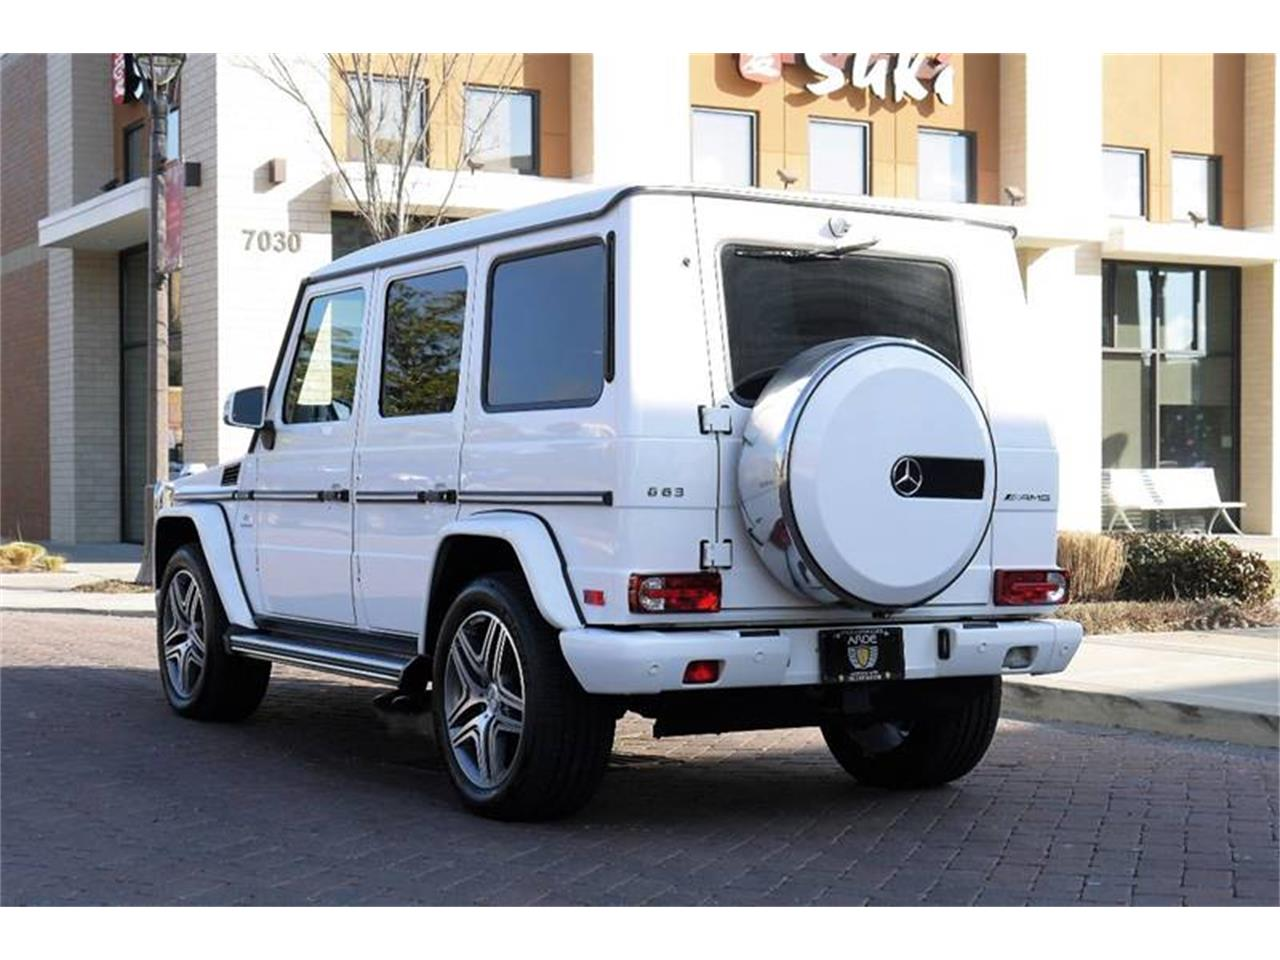 Large Picture of 2015 Mercedes-Benz G-Class Auction Vehicle Offered by Arde Motorcars - MOCR